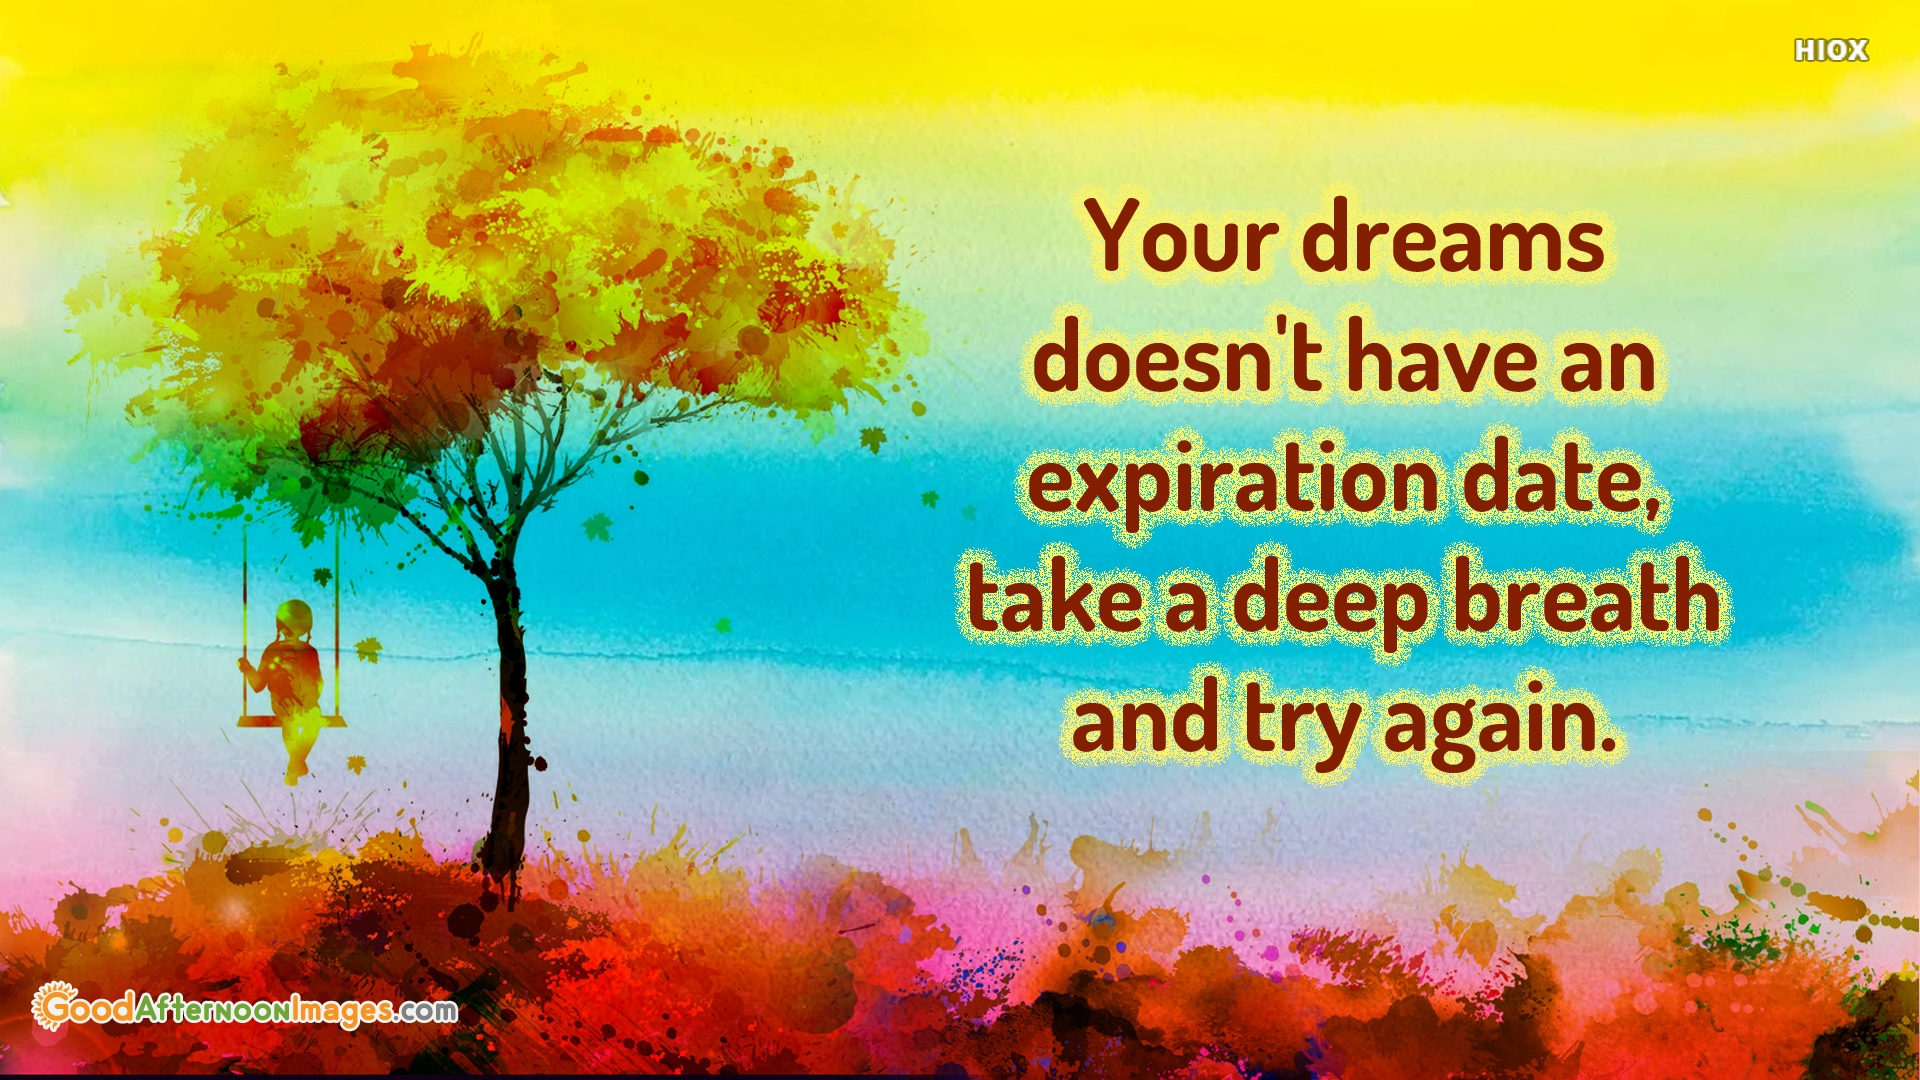 Your Dreams Doesn